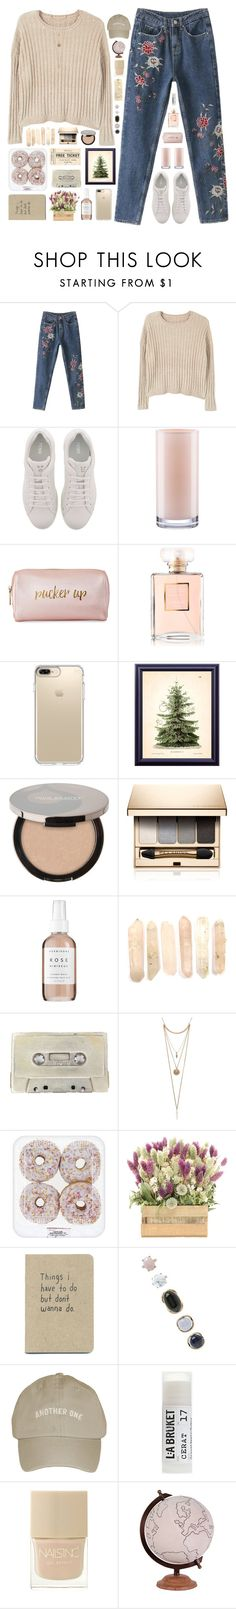 """""""*we found love in a hopeless place*"""" by my-black-wings ❤ liked on Polyvore featuring MANGO, Fendi, Kate Spade, Neiman Marcus, Chanel, Speck, Juice Beauty, Clarins, Herbivore and Uslu Airlines"""